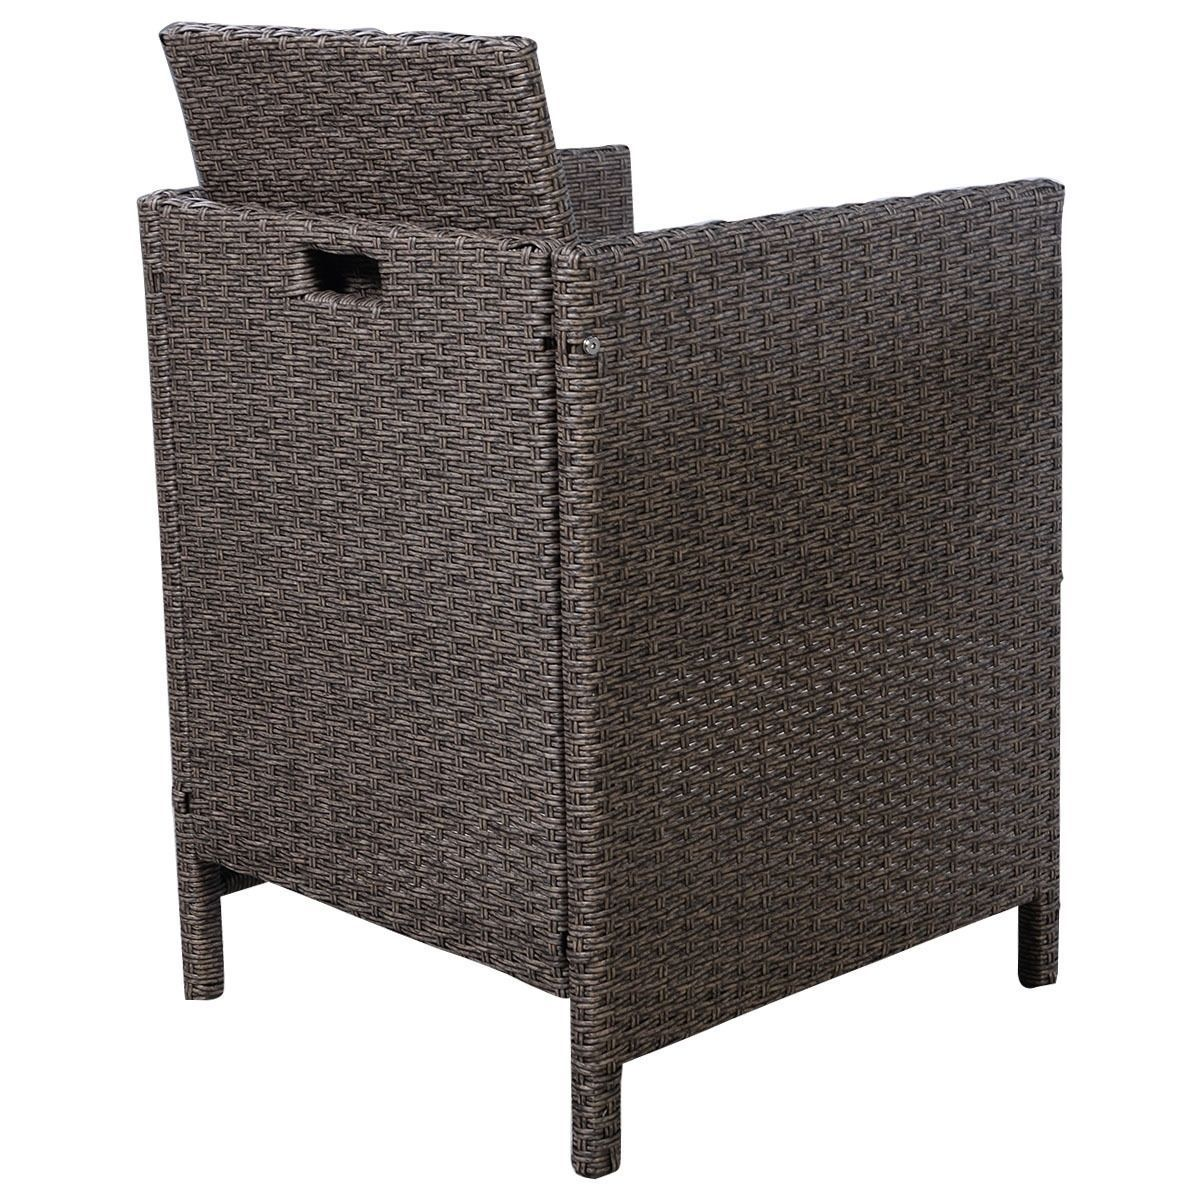 Garden Rattan Set 3pcs Table Chairs Cushioned Outdoor Patio Small Dining Set  image 7